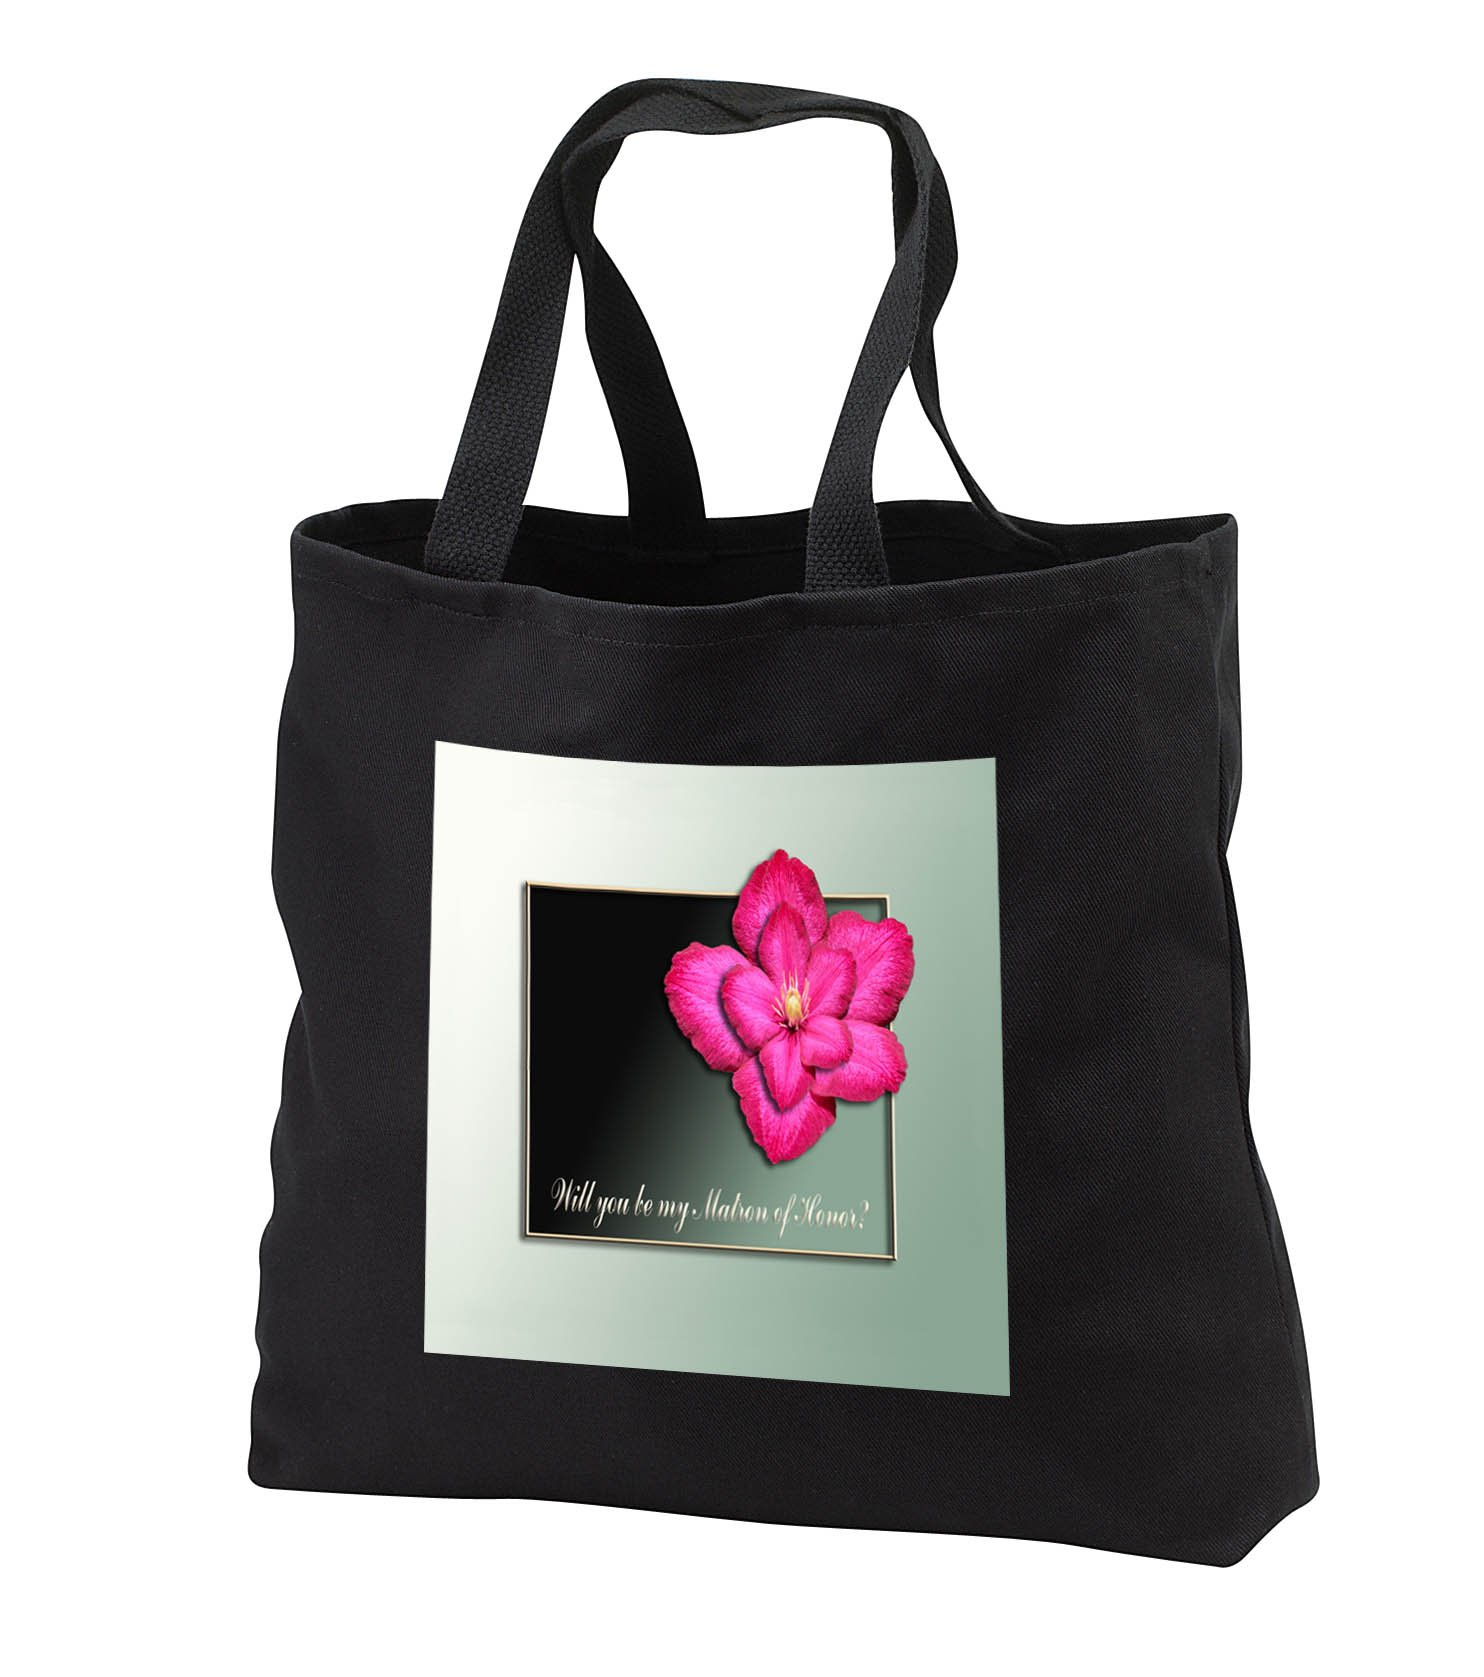 Beverly Turner Wedding Bridal Party Design - Will you be my Matron of Honor, Dark Pink Clematis Flower, Gold Frame - Tote Bags - Black Tote Bag 14w x 14h x 3d (tb_282198_1)